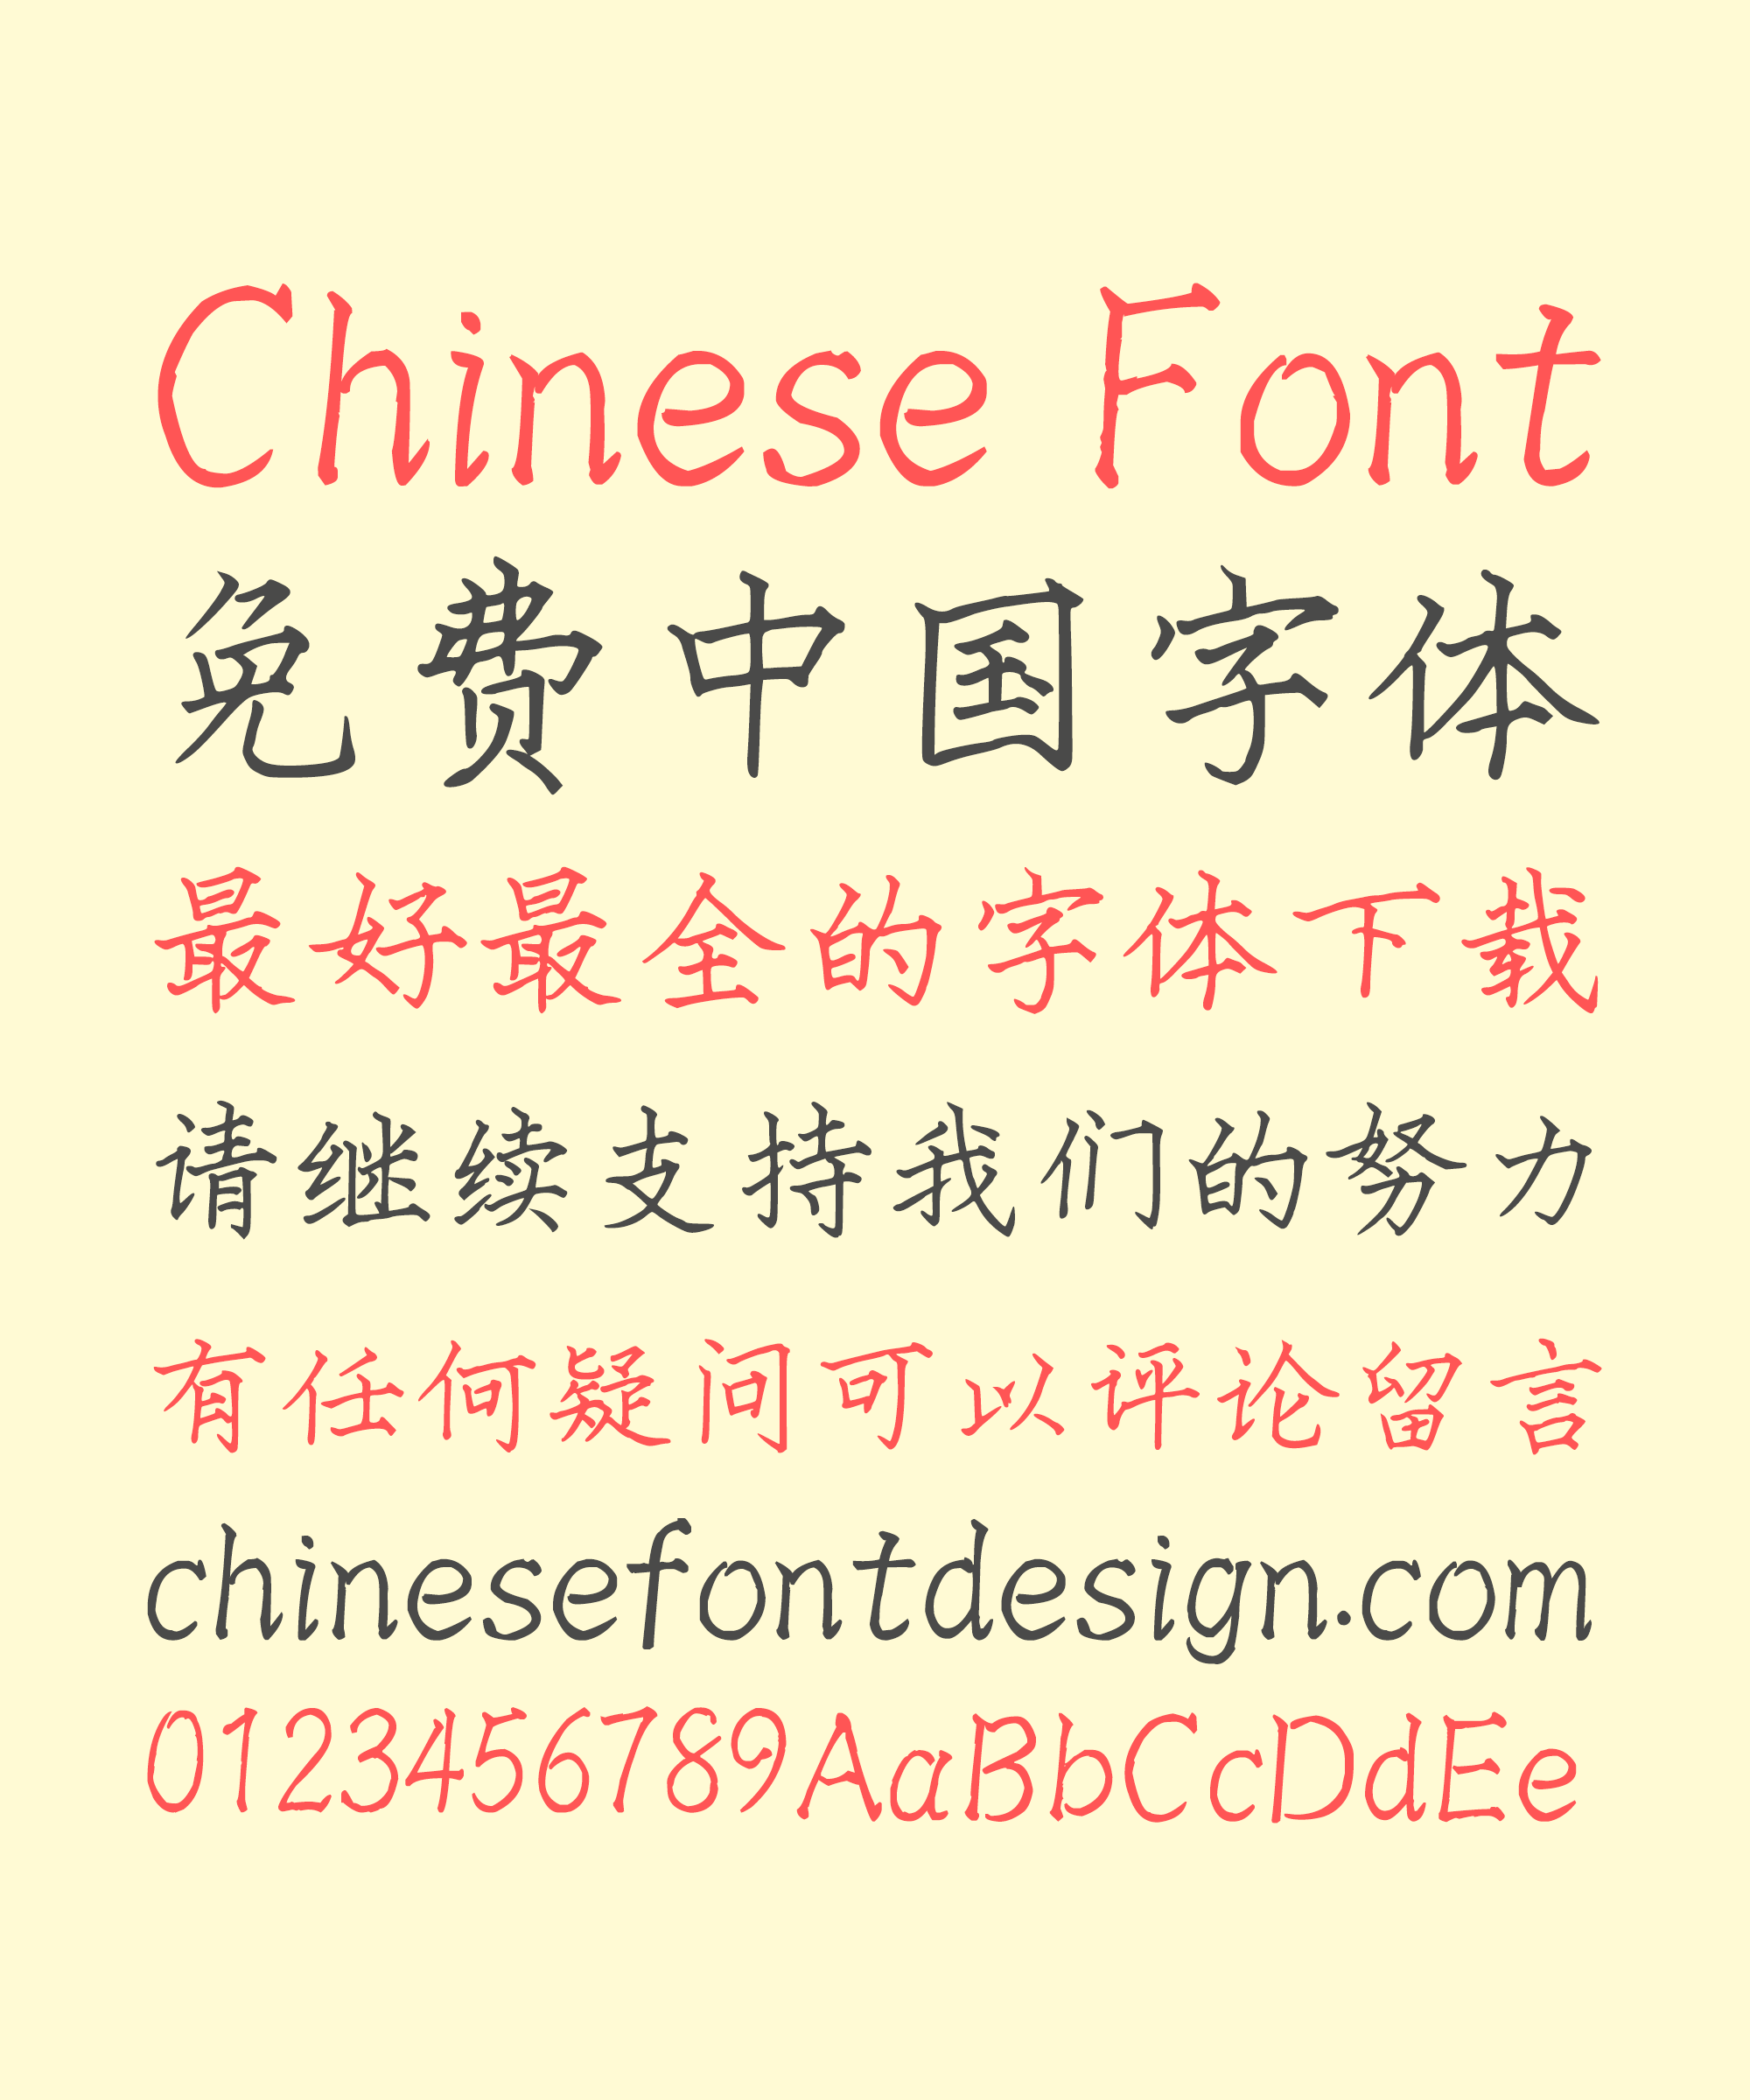 Cicada Feather Dagger-Axe[ancient Chinese weapon]Handwriting Pen Chinese Font – Simplified Chinese Fonts